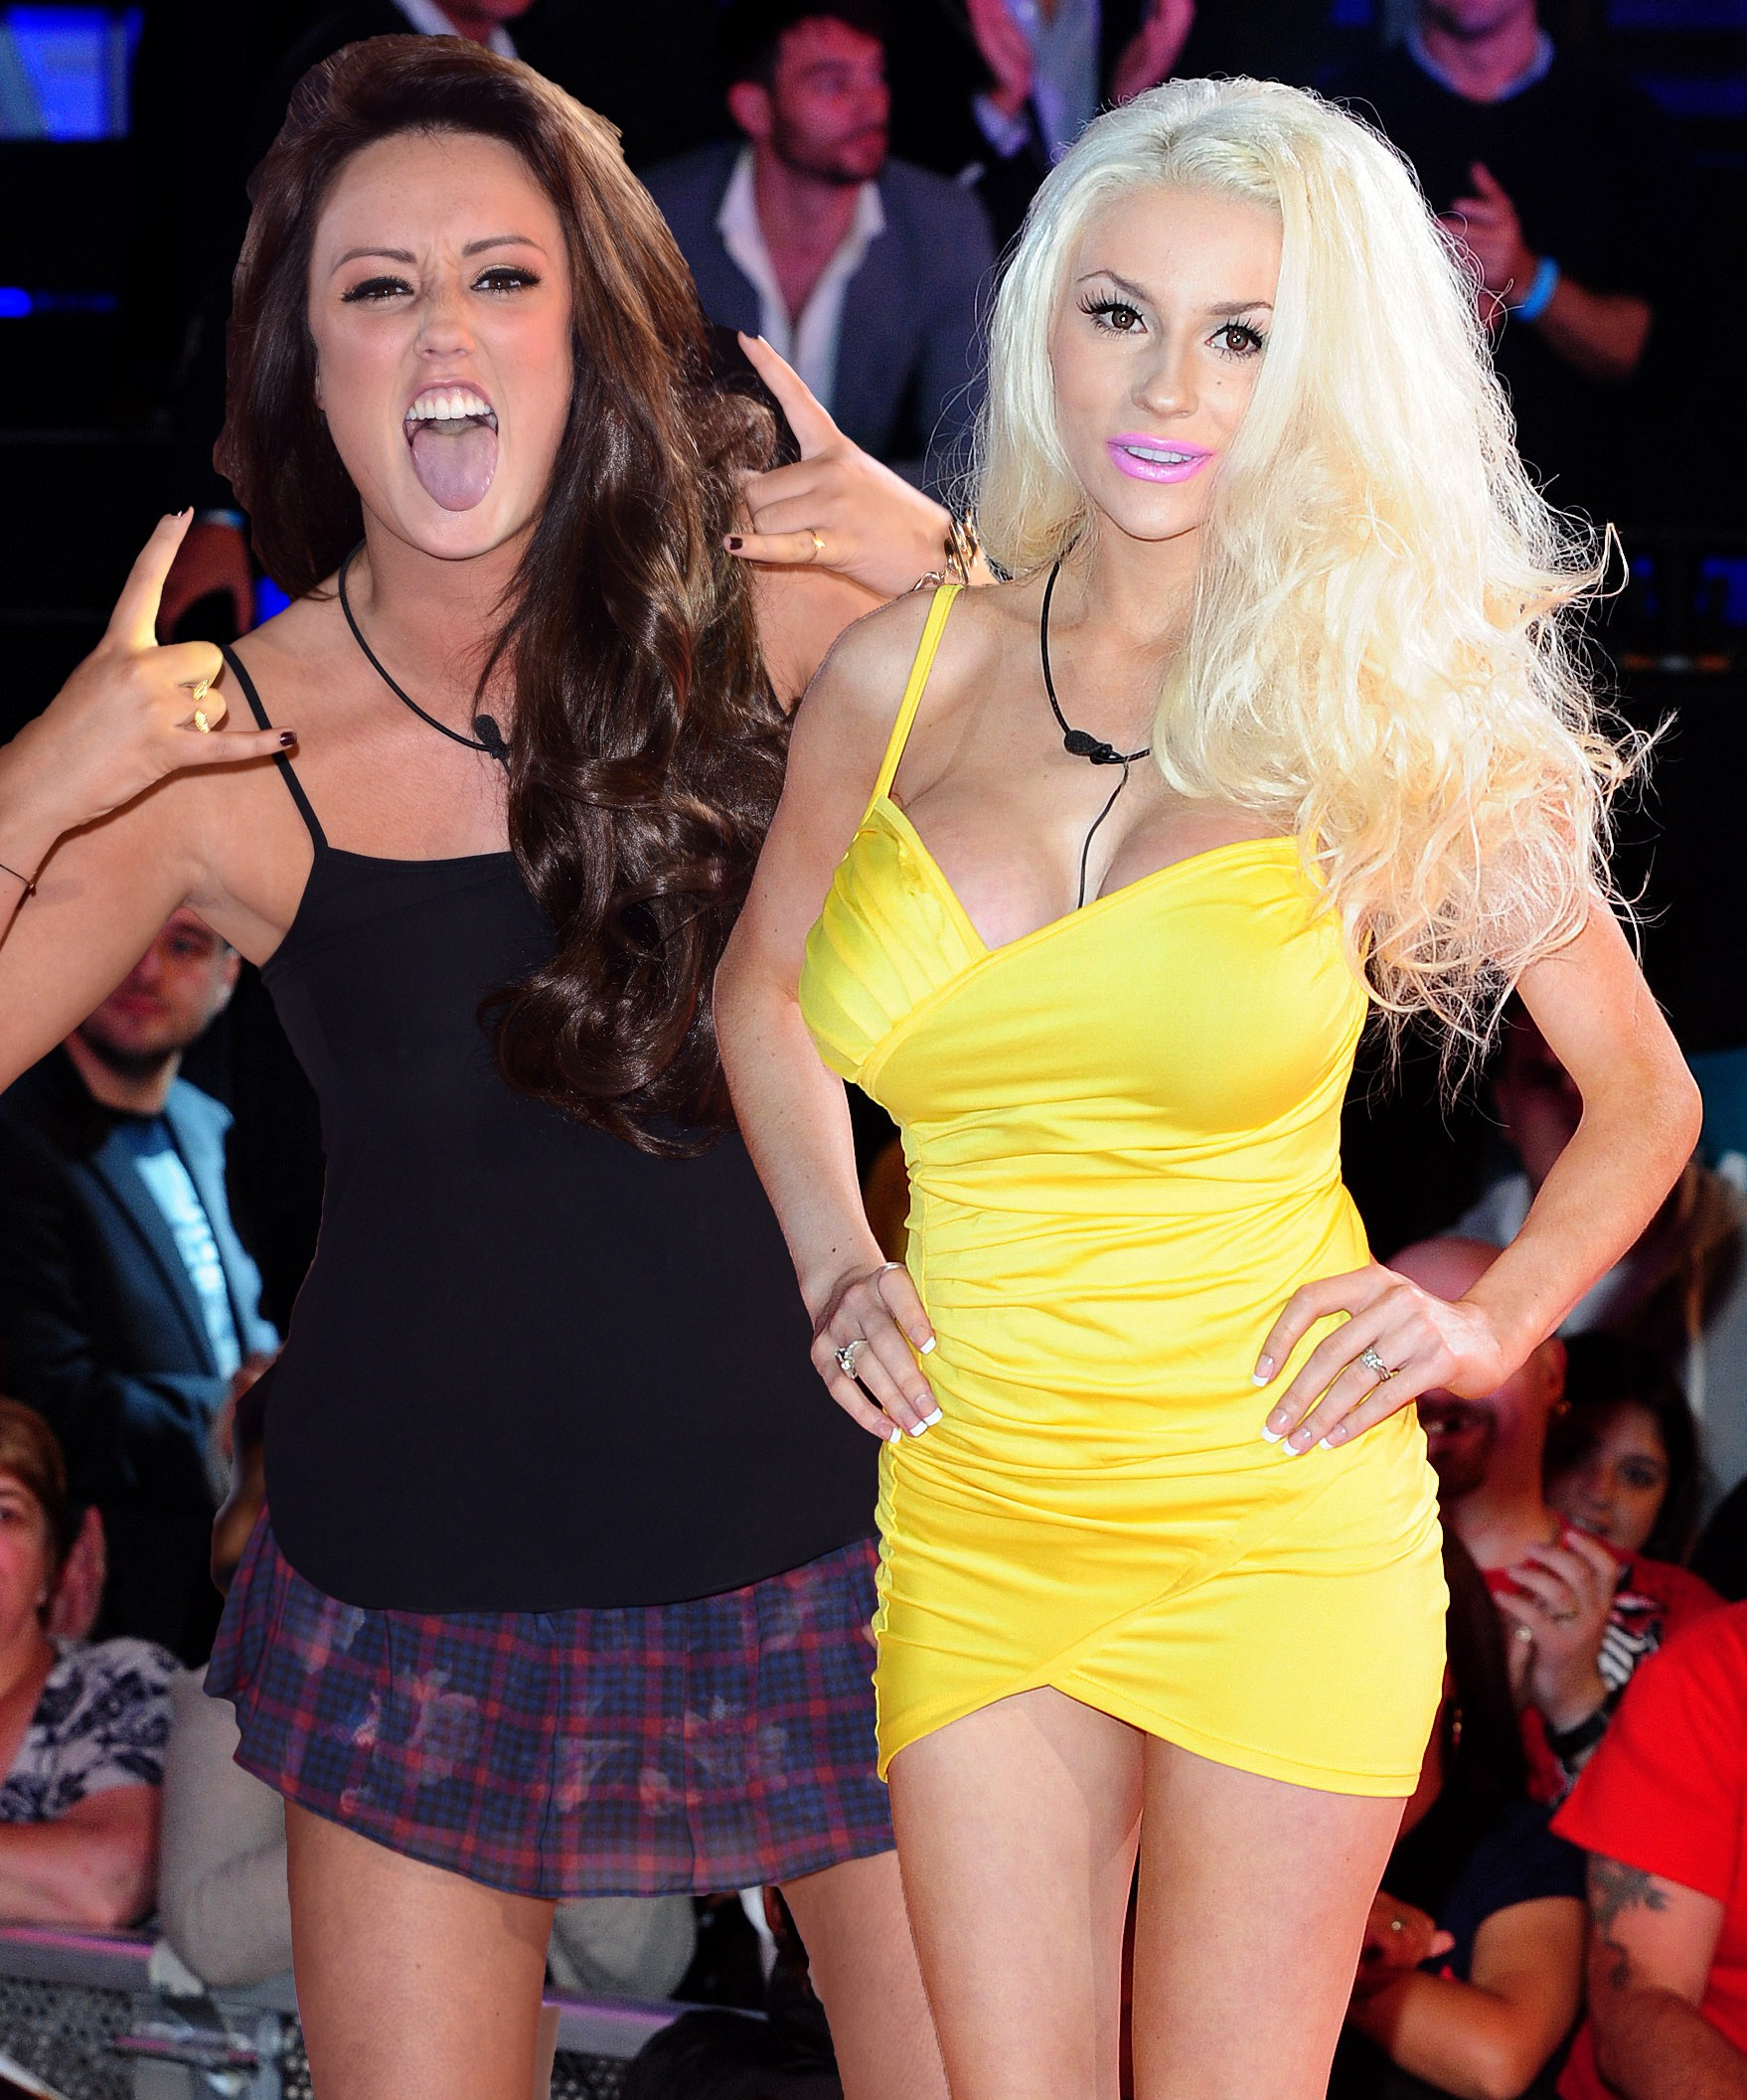 Face off: Charlotte Crosby vs Courtney Stodden, the latest Celebrity Big Brother housemates